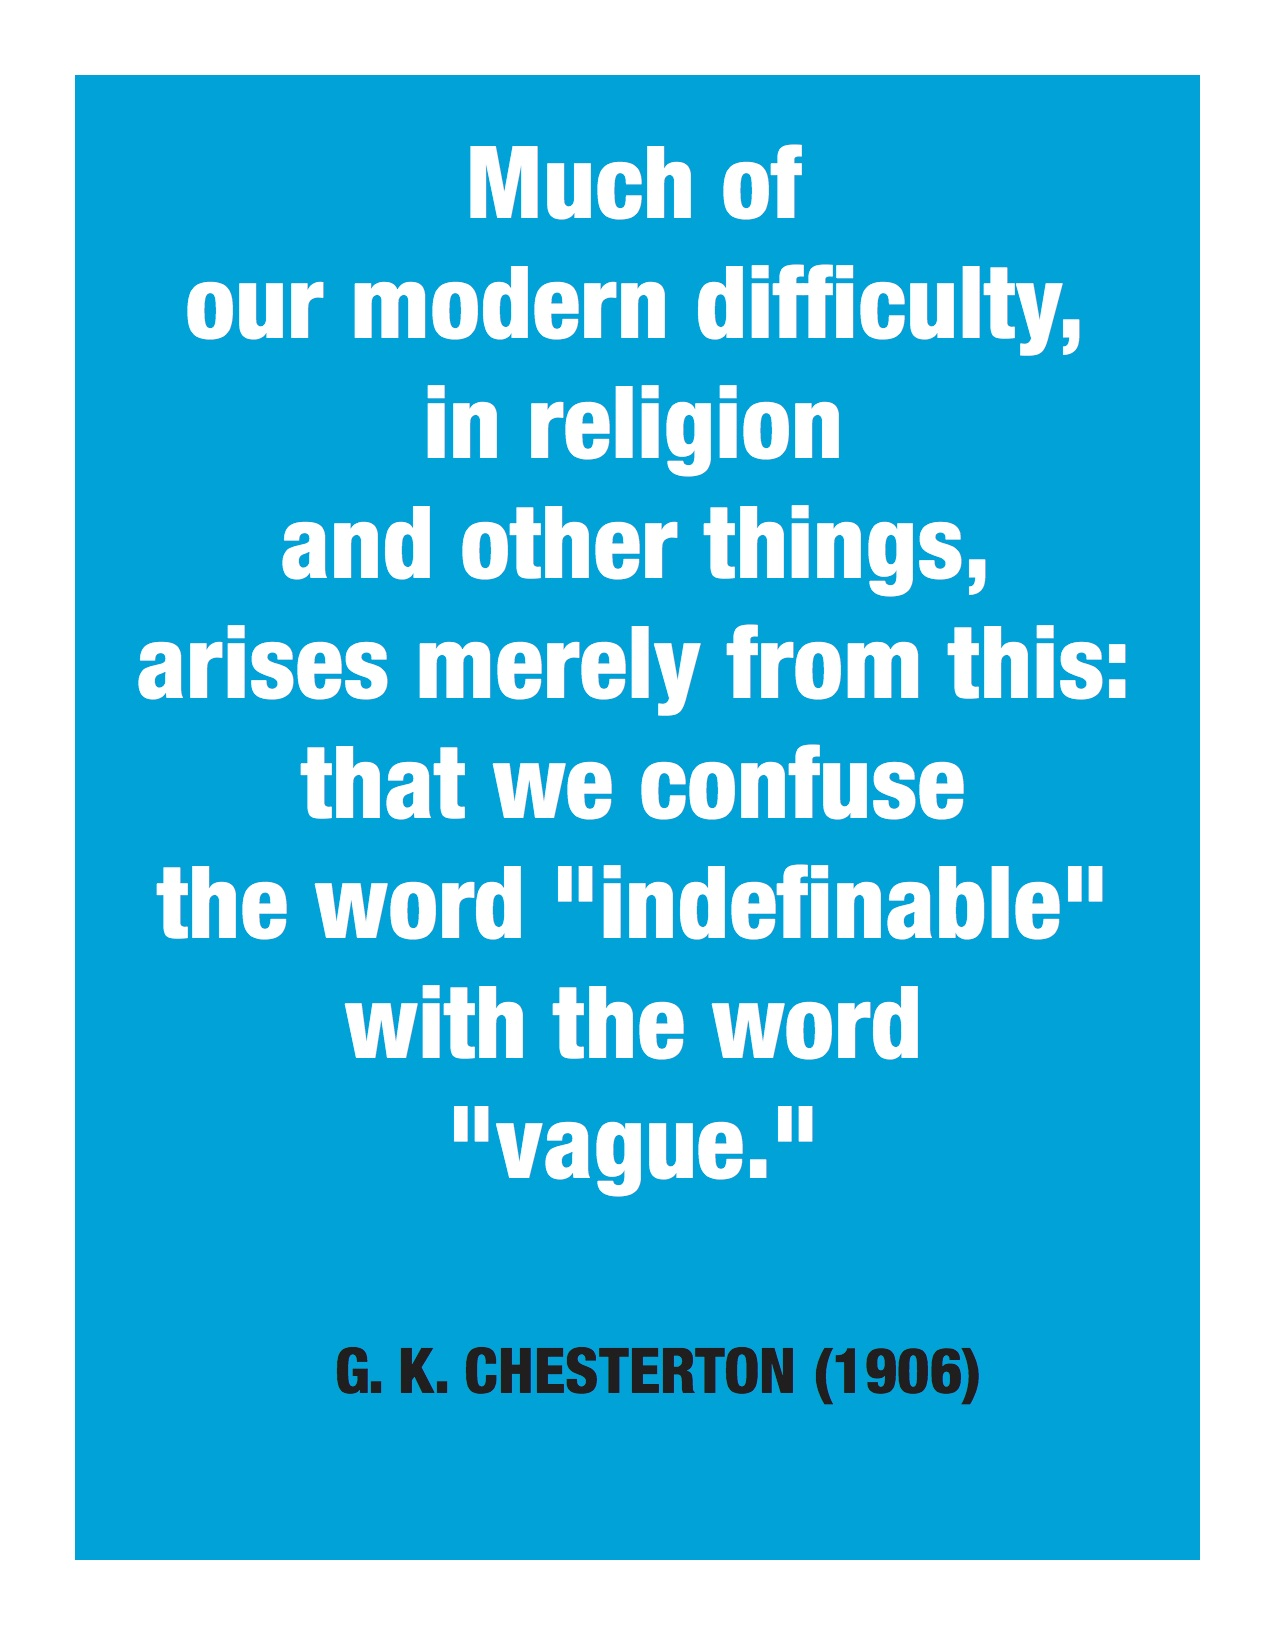 Chesterton text